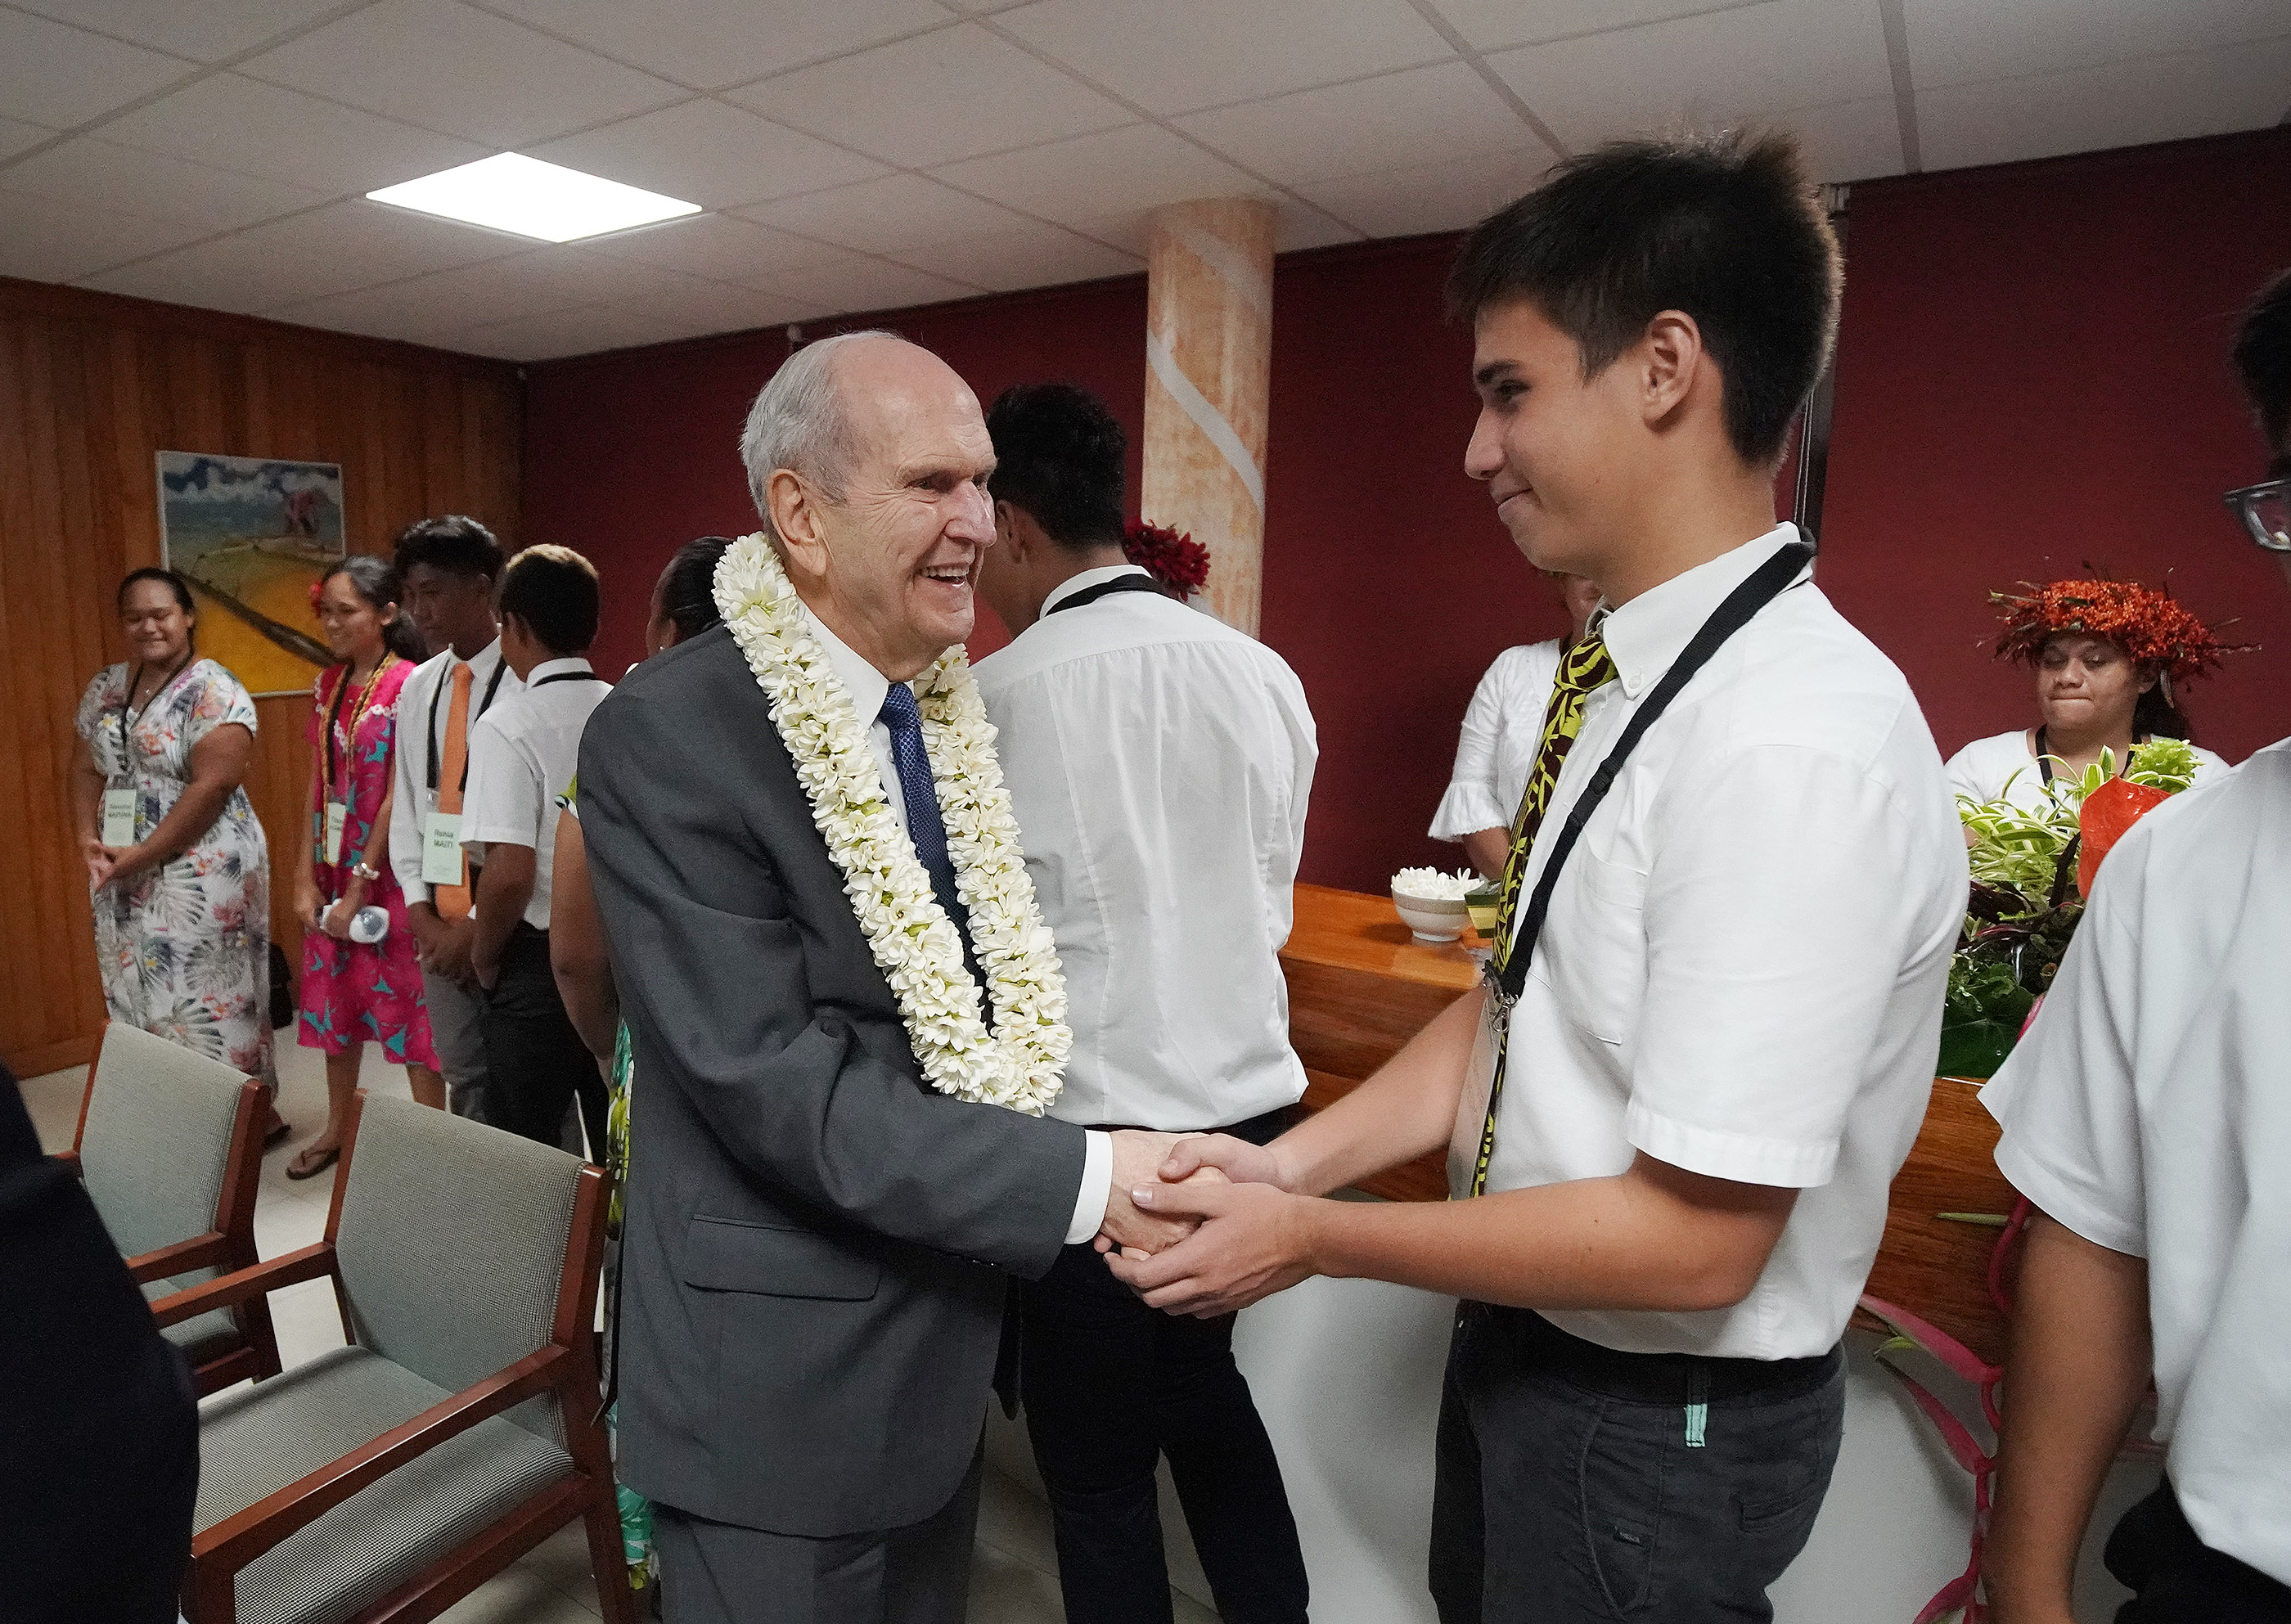 President Russell M. Nelson of The Church of Jesus Christ of Latter-day Saints greets Heimana Pedron after a Tahiti cultural program in Papeete, Tahiti, on May 24, 2019.